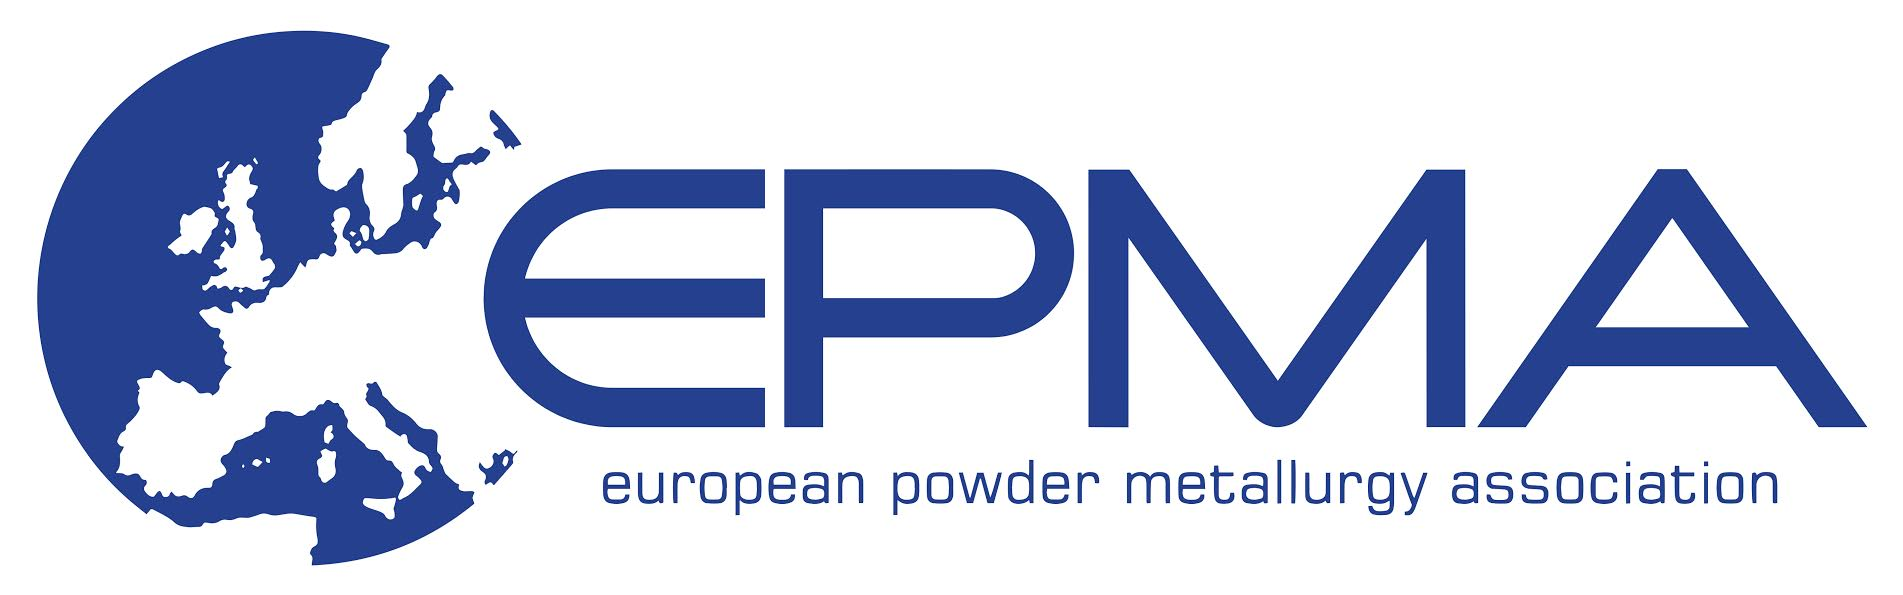 logo for European Powder Metallurgy Association